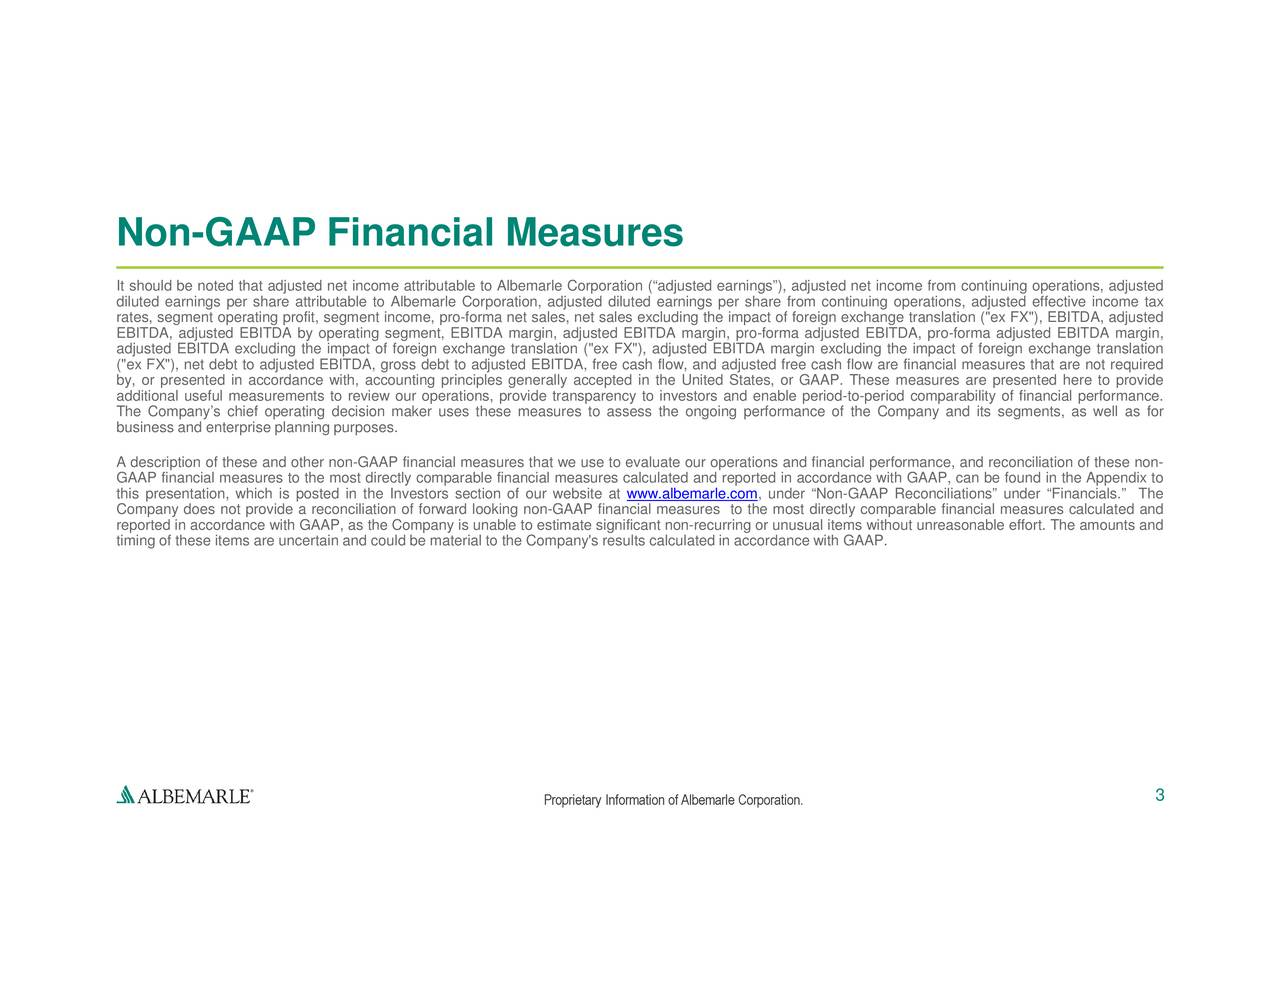 "s segments, as well as for forma adjusted EBITDA margin, ures are presented here to provide mpact of foreign exchange translationasures calculated and maGAAP, can be found in the Appendix to ge translation (""ex FX""), EBITDA, adjustede effort. The amounts and income from continuing operations, adjustedax performance. , under Non-GAAP Reconciliations under Financials. Th www.albemarle.com n, adjusted EBITDA margin, pro-forma adjusted EBITDA, pro-CompProprietary Information of Albemarle Corporation. estimate significant non-recurring or unusual items witho and EBITDA, fres that we use to evaluate our operations and financial perfor lbration, adjusted diluted earnings per share from continuinlated in accordance with GAAP. a net sales, net sales excluding the impact of foreign exchan No IndirtEBad(""st,adThbusiesGAtAisfrasnetlion,suricsispostostdirhetIvestorsrbctinnmaterial to to"